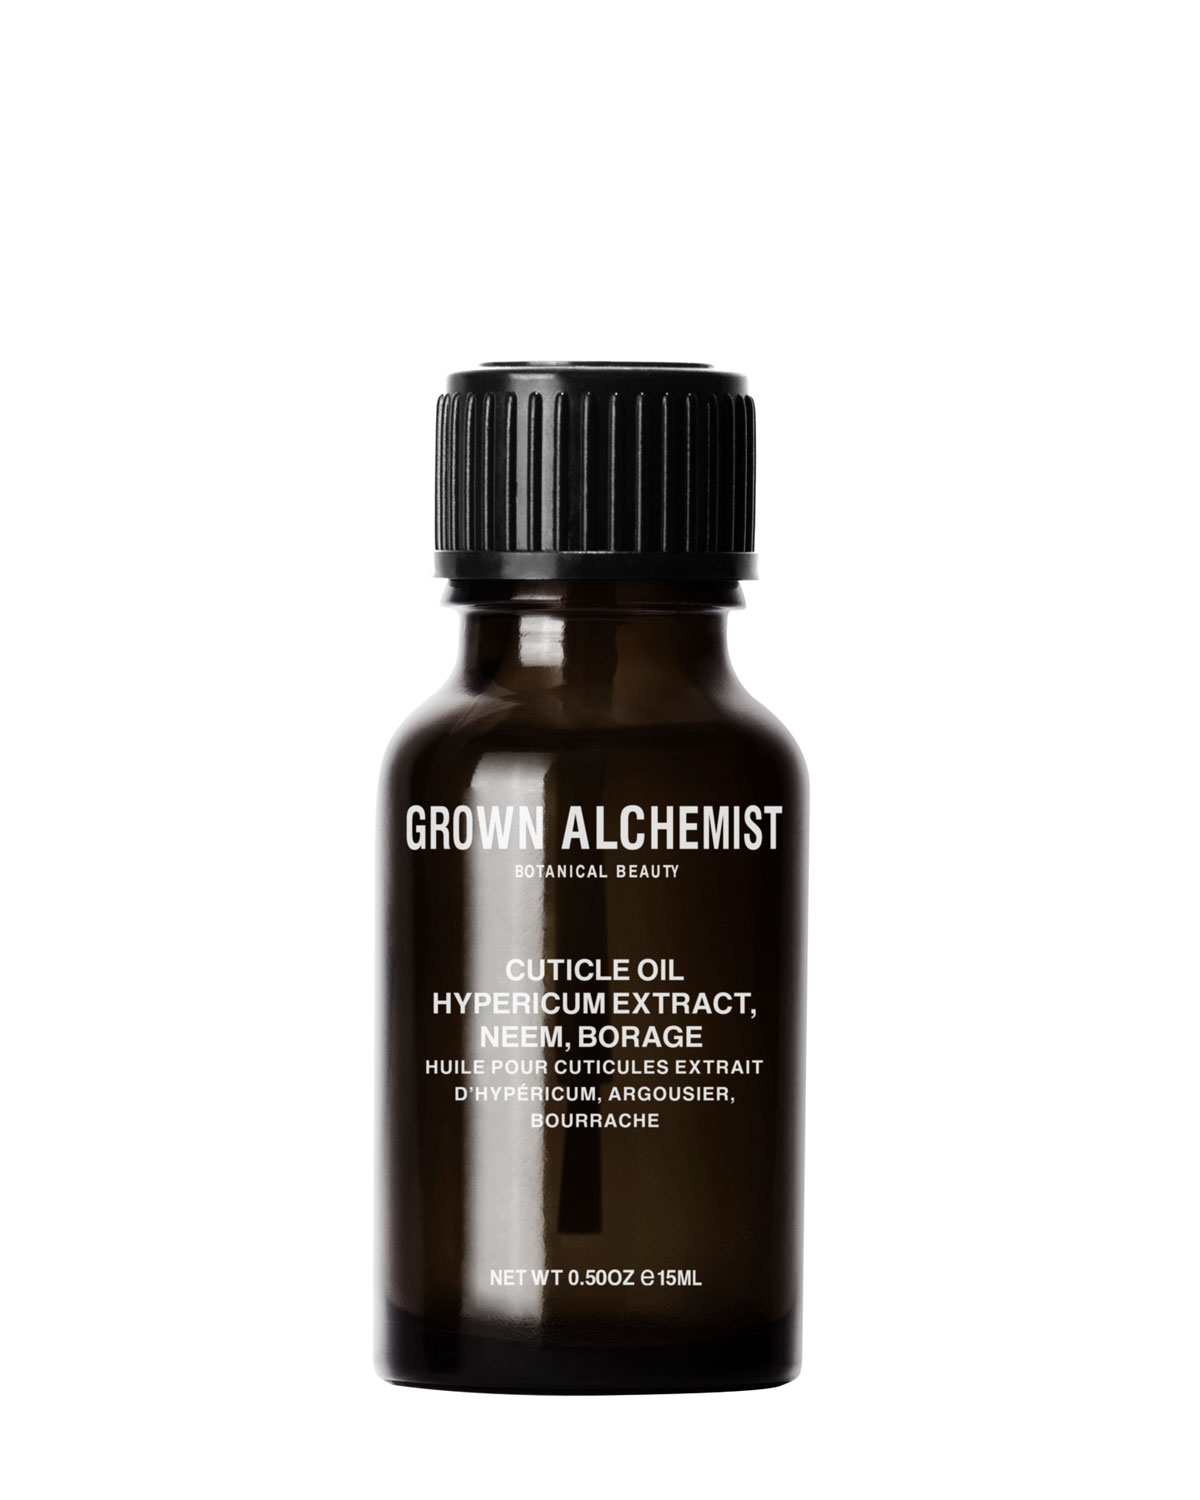 GROWN ALCHEMIST Cuticle Oil: Hypericum Extract, Neem, Borage, 0.5 Oz./ 15 Ml